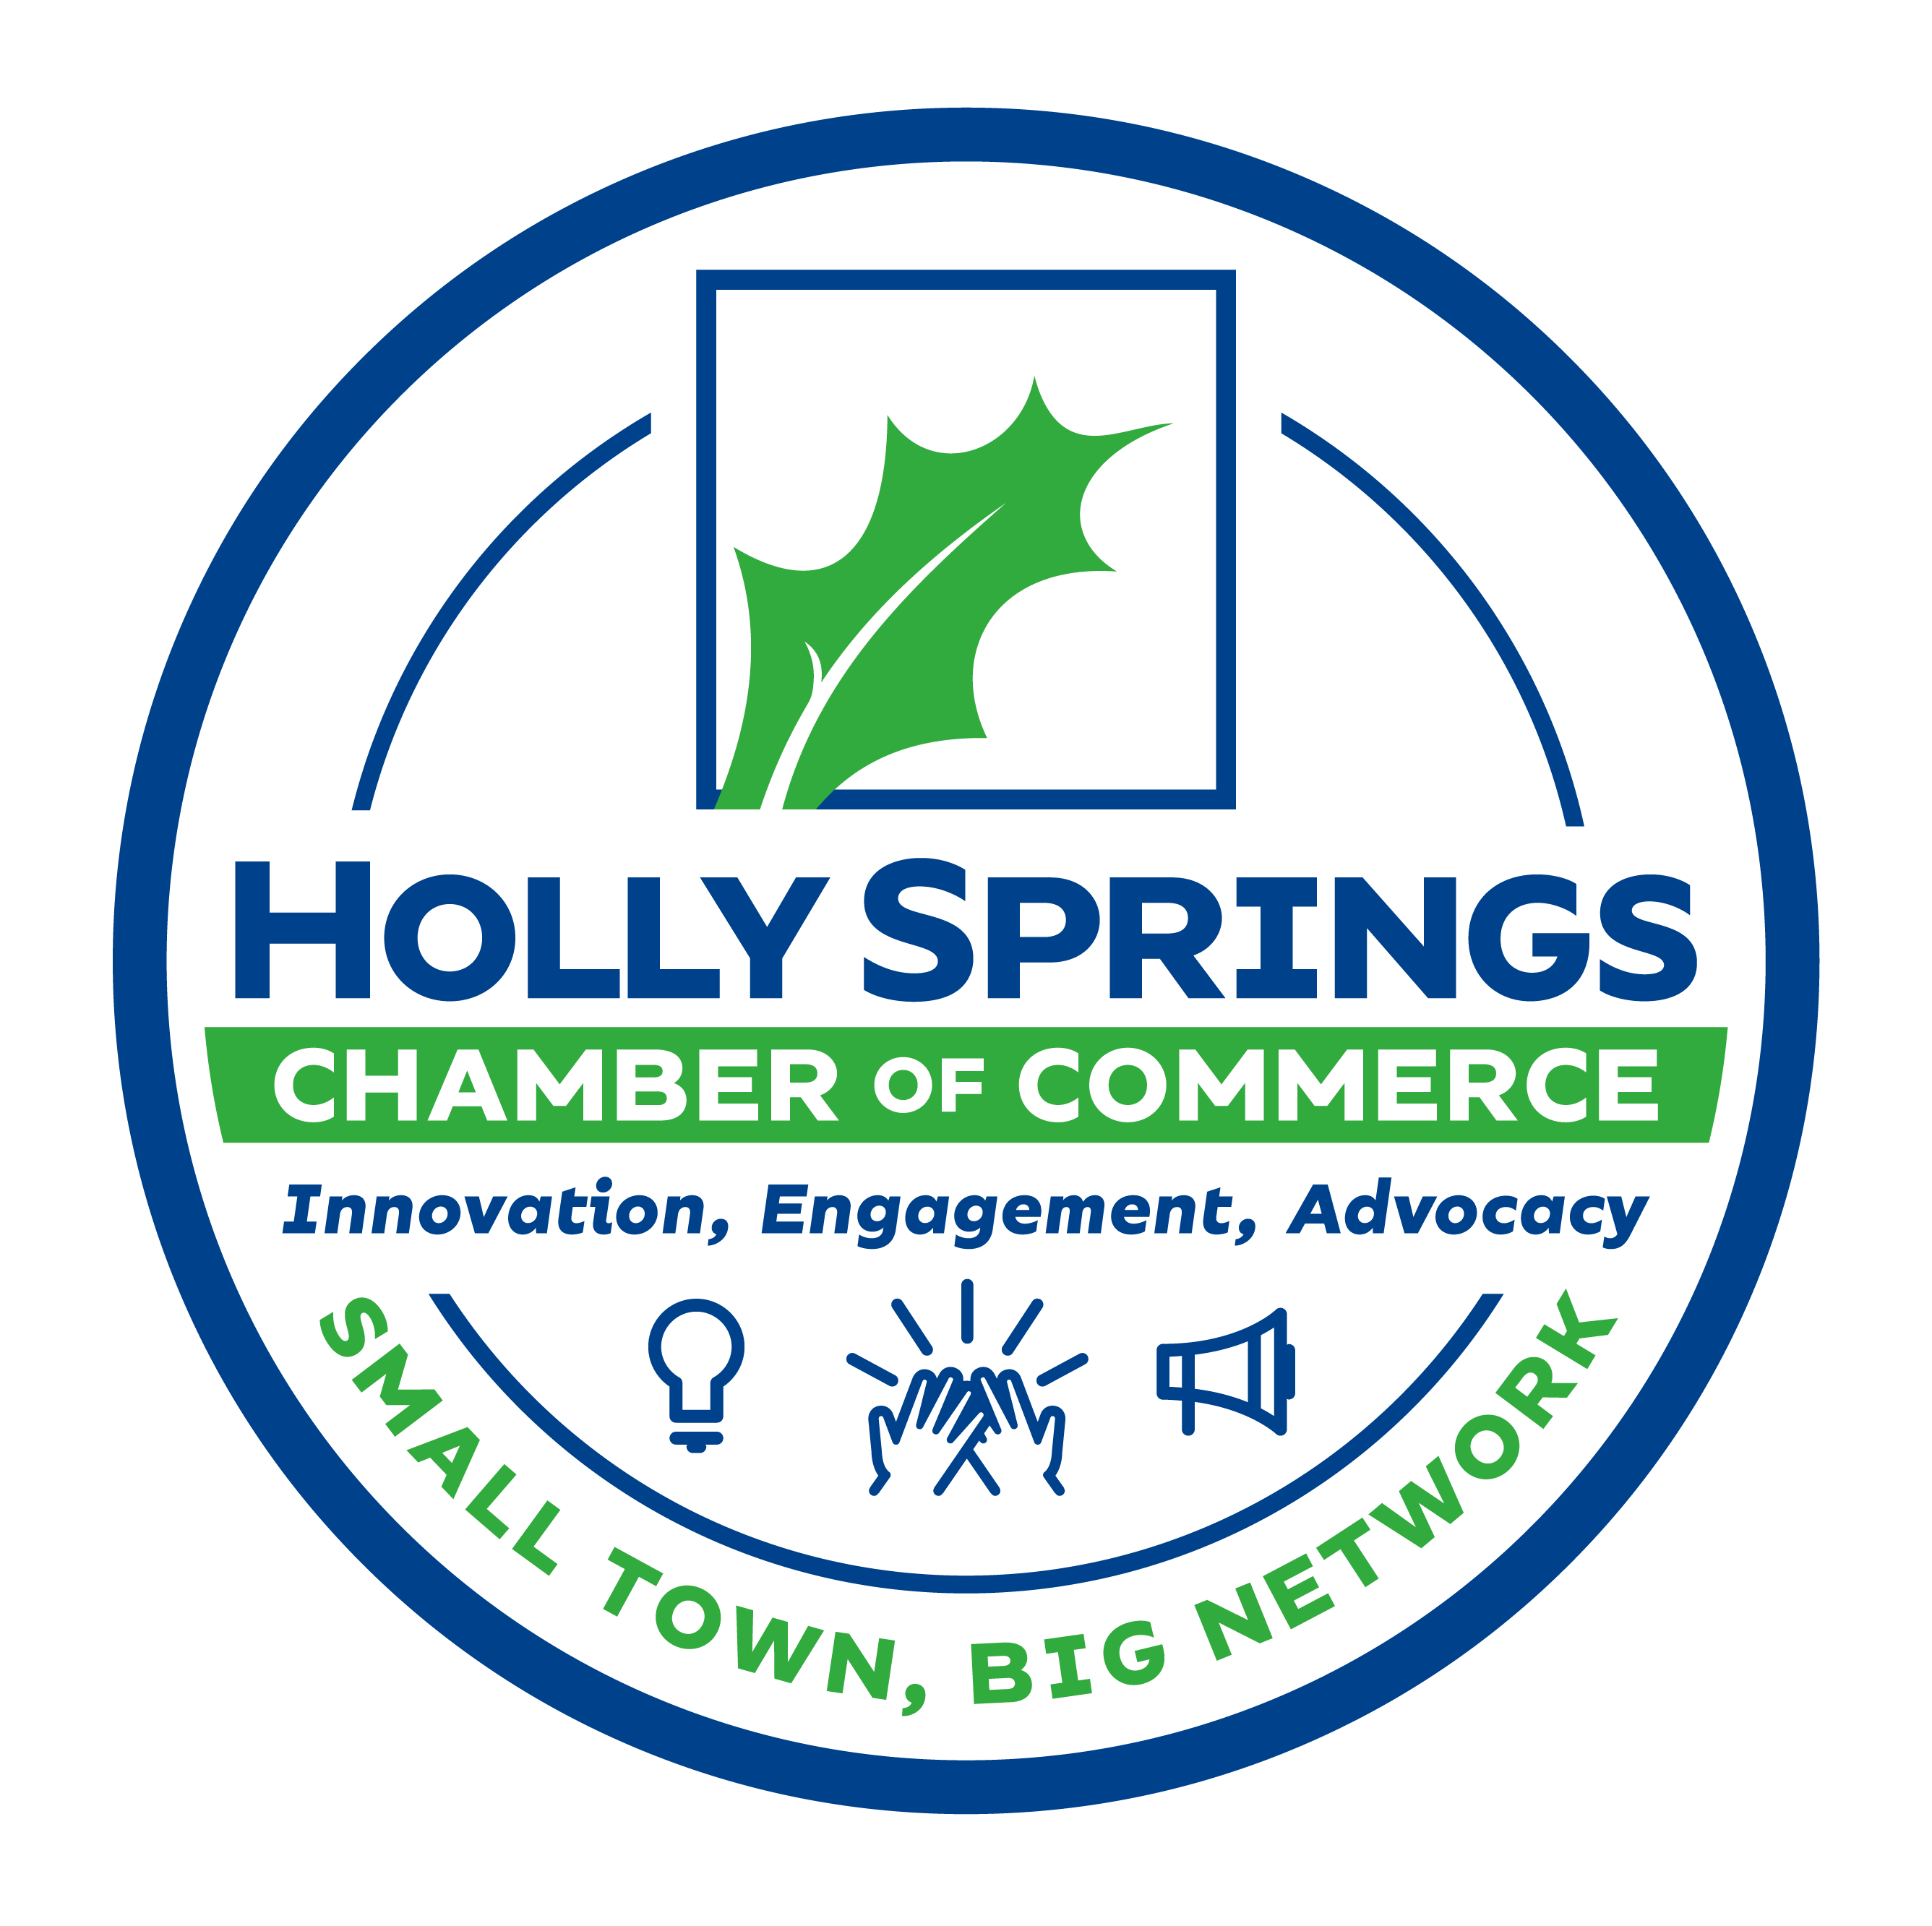 Sponsor Holly Springs Chamber of Commerce